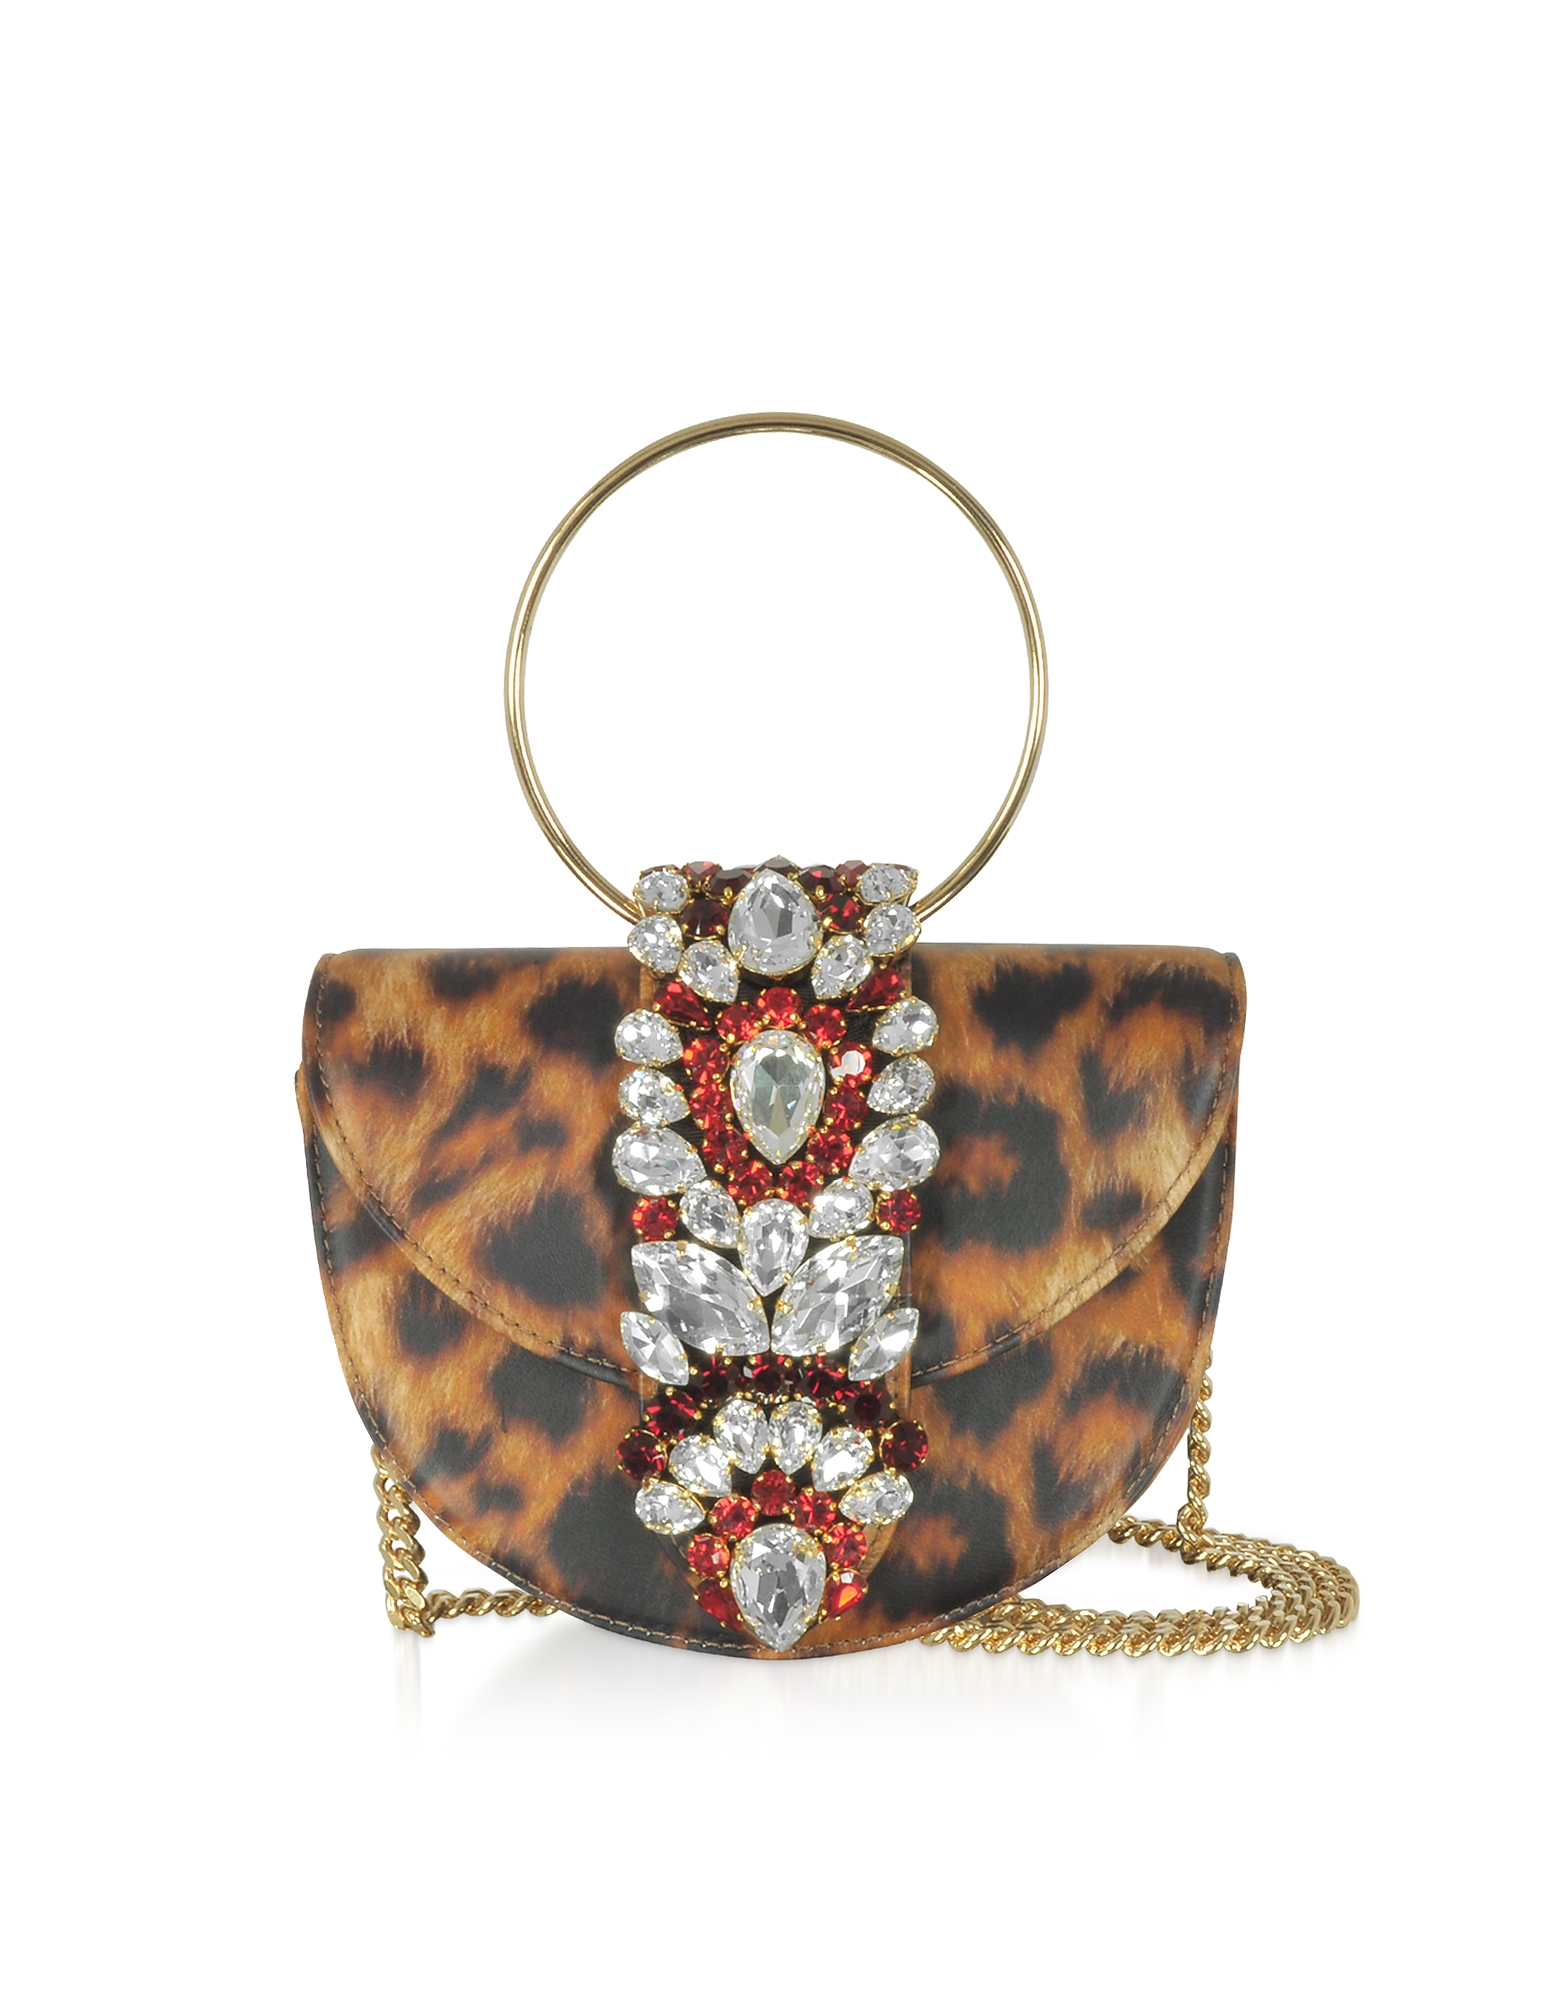 Gedebe Designer Handbags, Mini Brigitte Animal Printed Leather Clutch